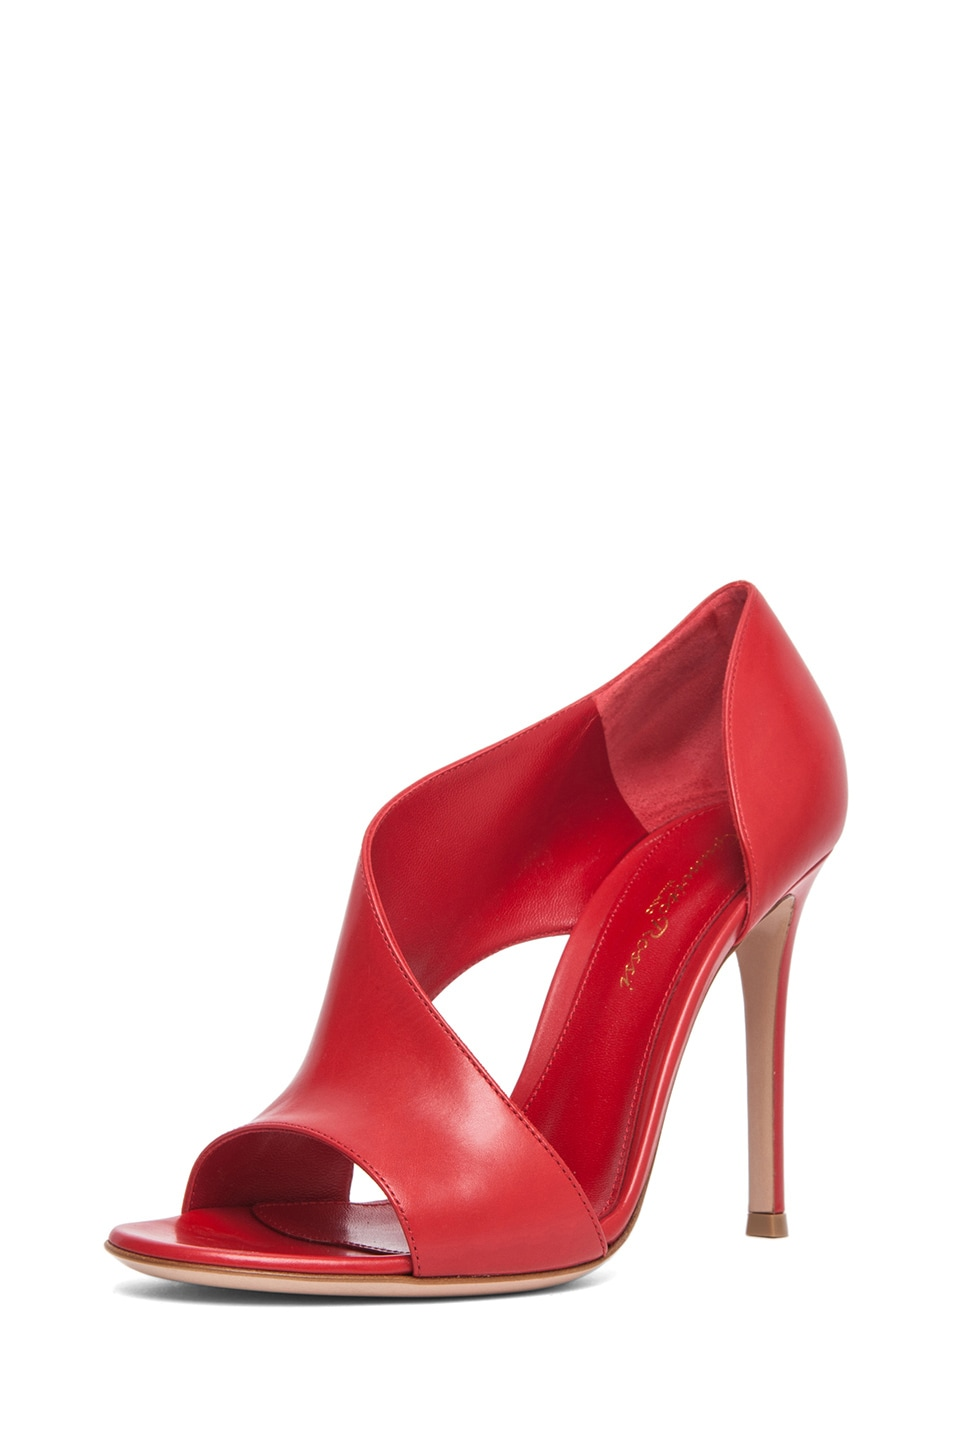 Image 2 of Gianvito Rossi Leather Heel in Red